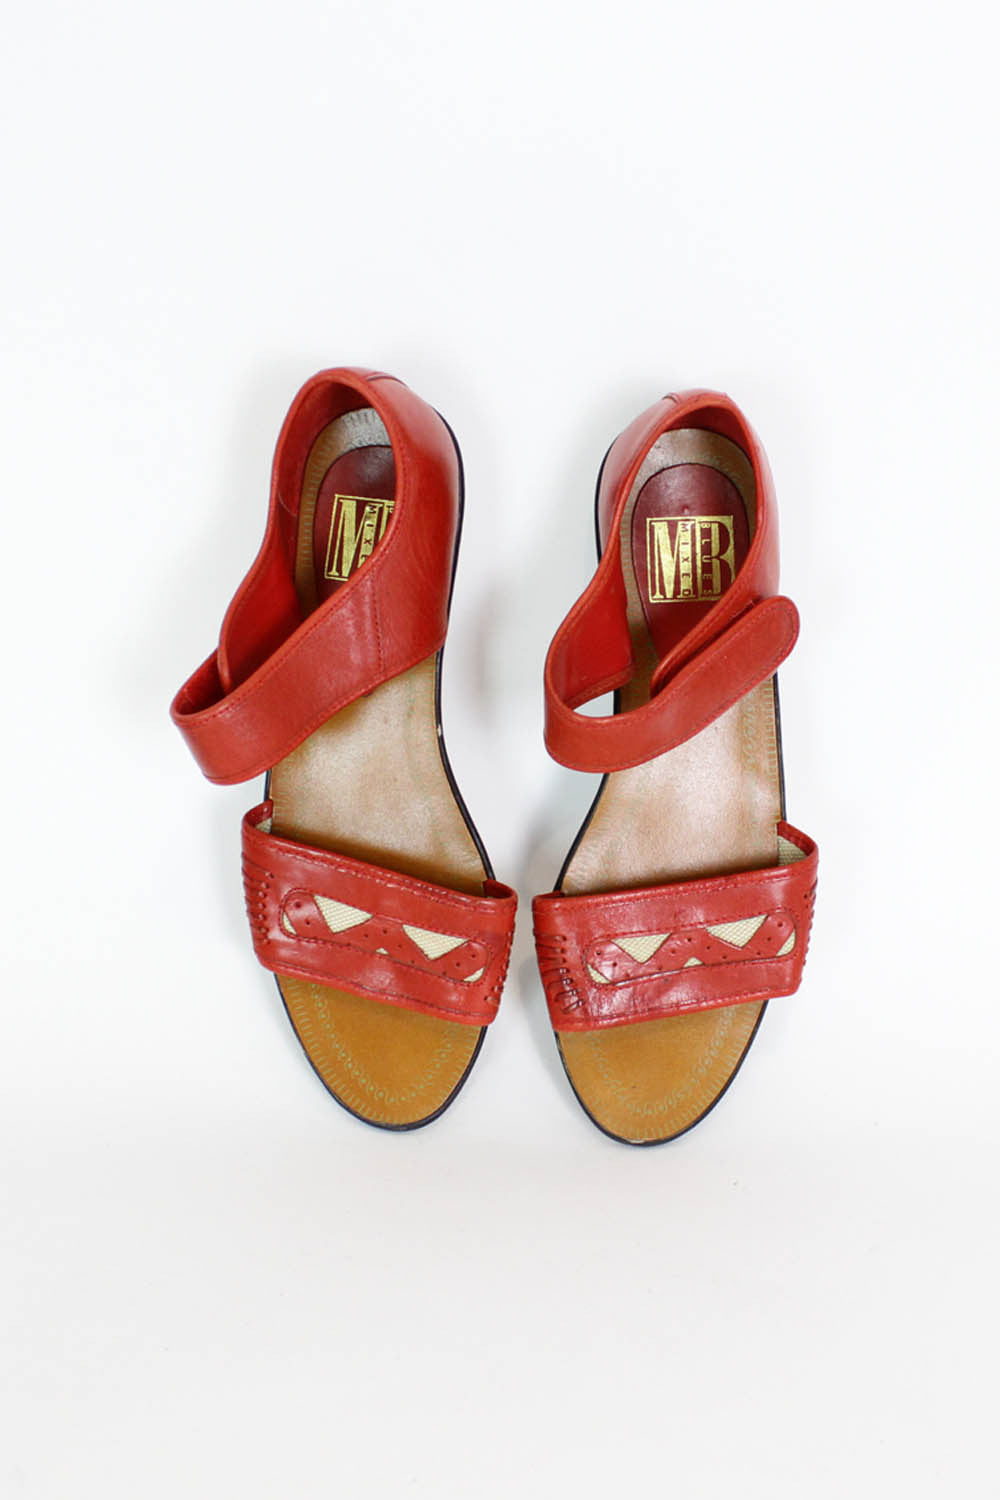 Red Leather Cutout Sandals 7